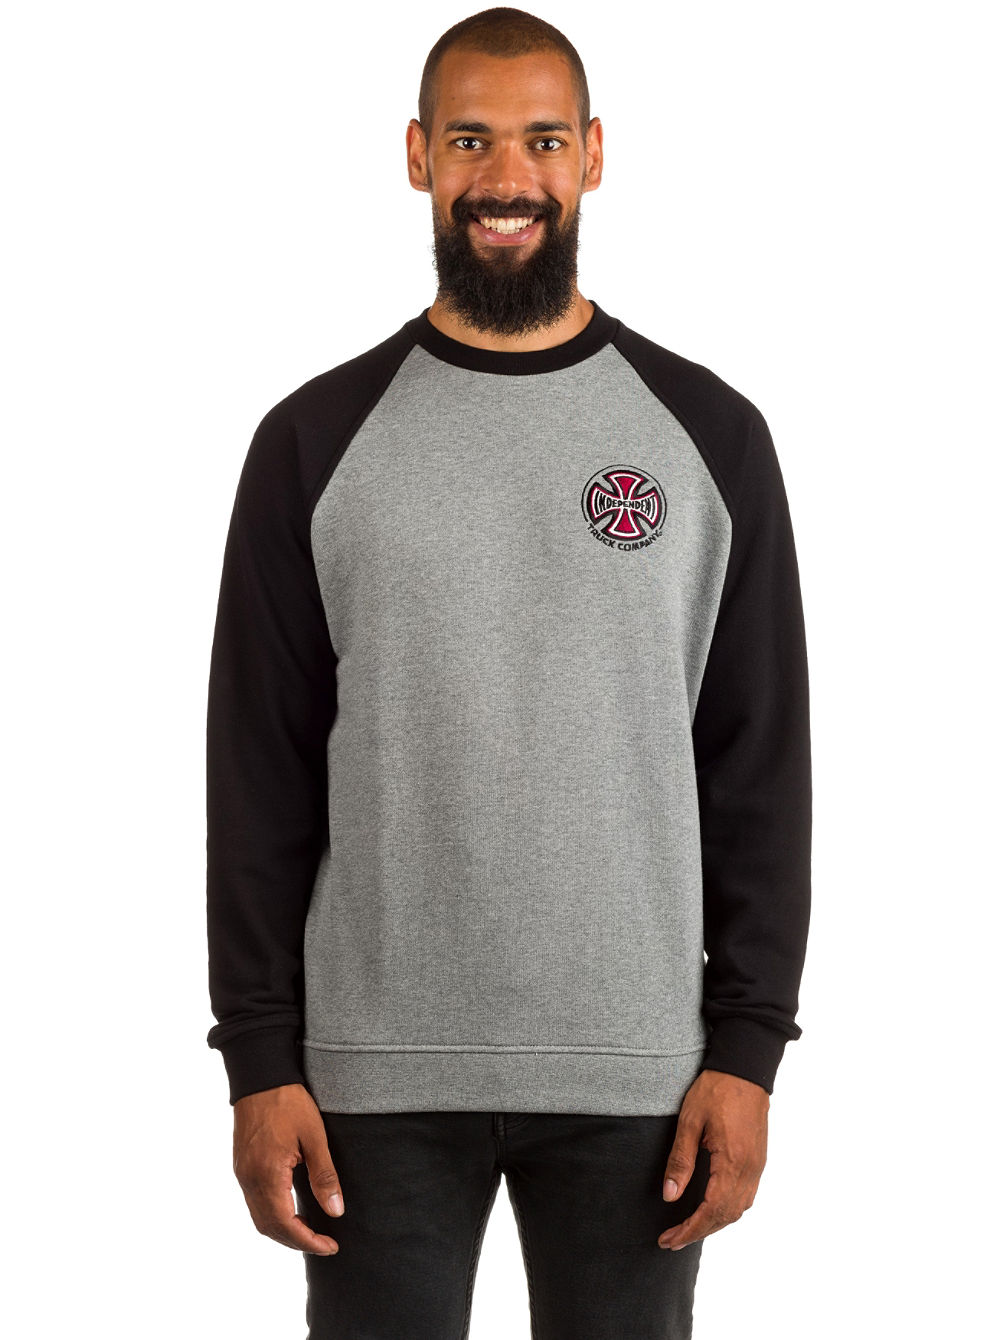 TC Raglan Crew Sweater